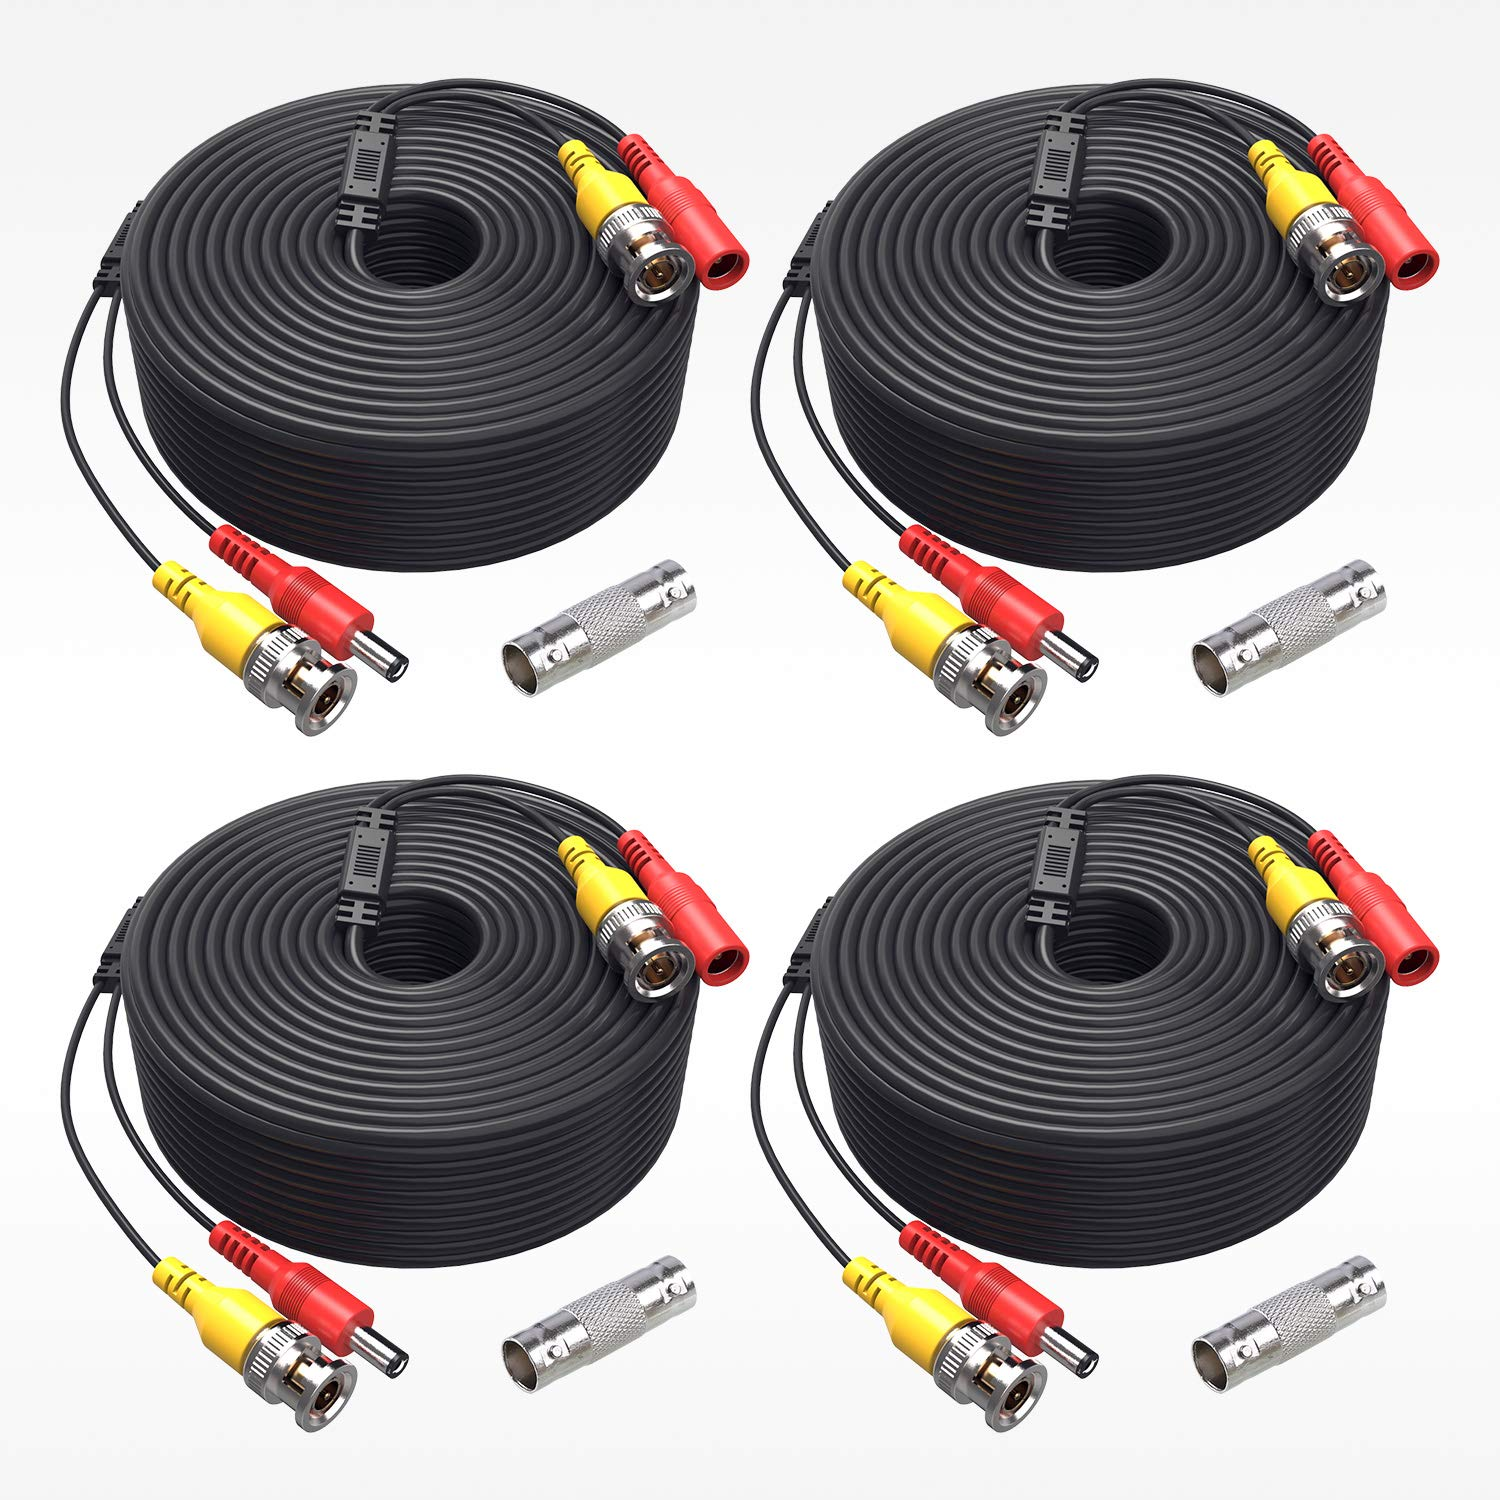 ANNKE (4) 150 Feet Video Power Cable For Security Camera System, All-in-One BNC Video and Power CCTV Security Camera Cable with Two Female Connectors (4-Pack) by ANNKE